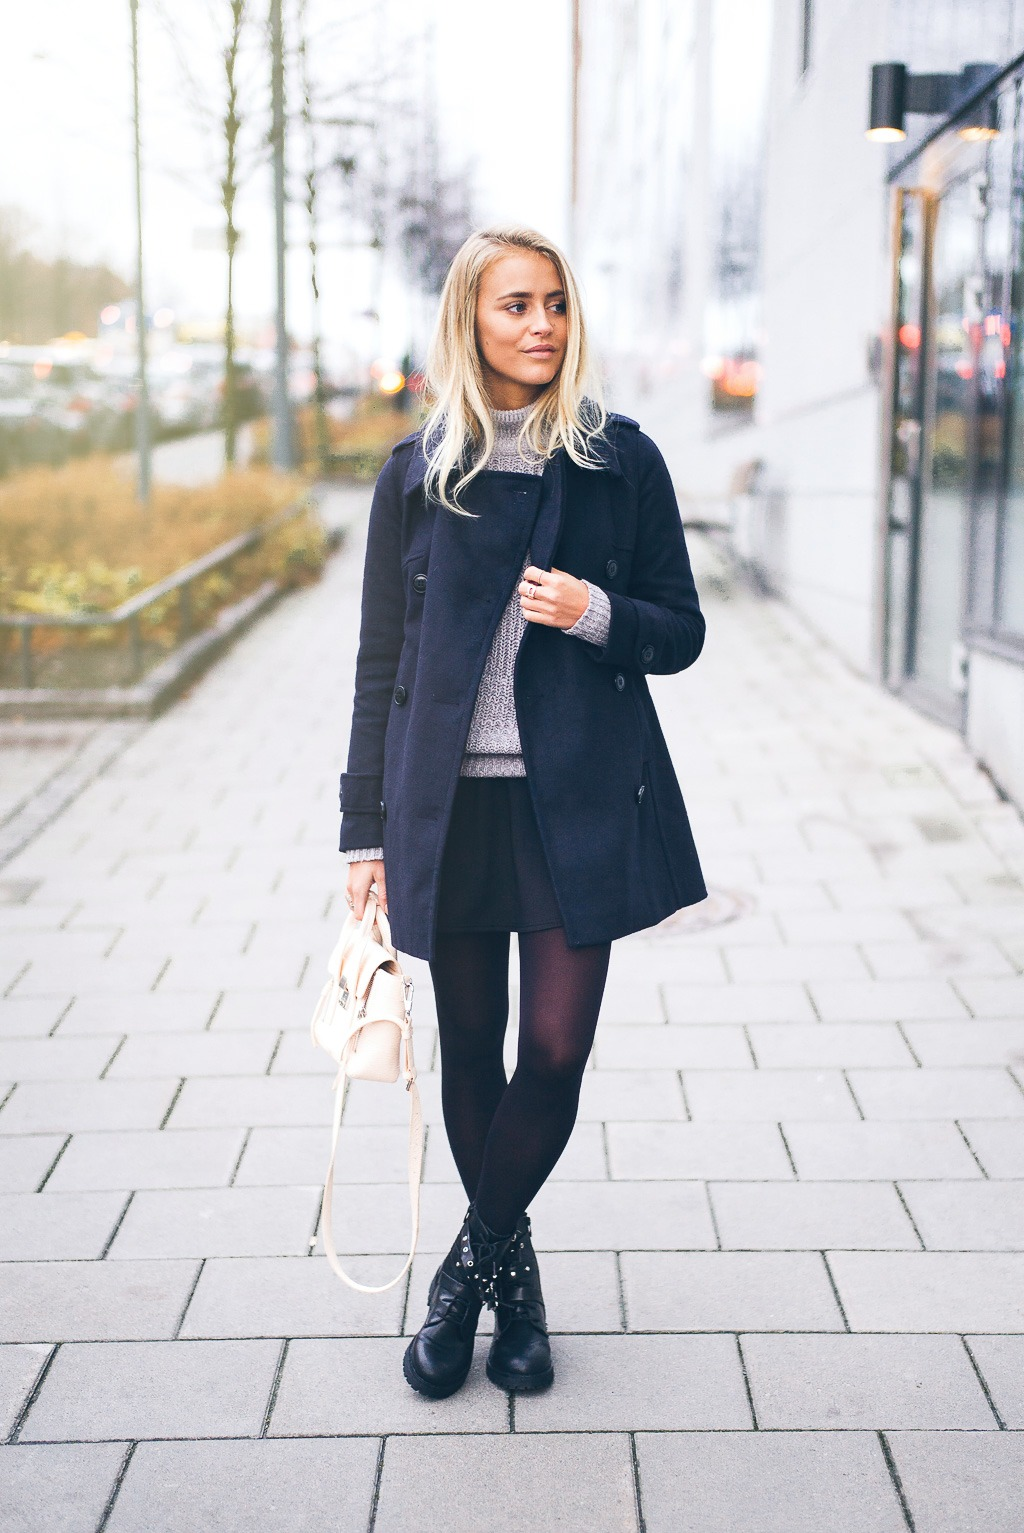 Combat boots can add edge and a tough quality to your everyday outfits. Wear a pair with a skirt and tights to steal Janni Deler's style. Jacket: Lindex, Sweater: NLYtrend by Janni, Bag: Phillip Lim, Shoes: Nilsson.